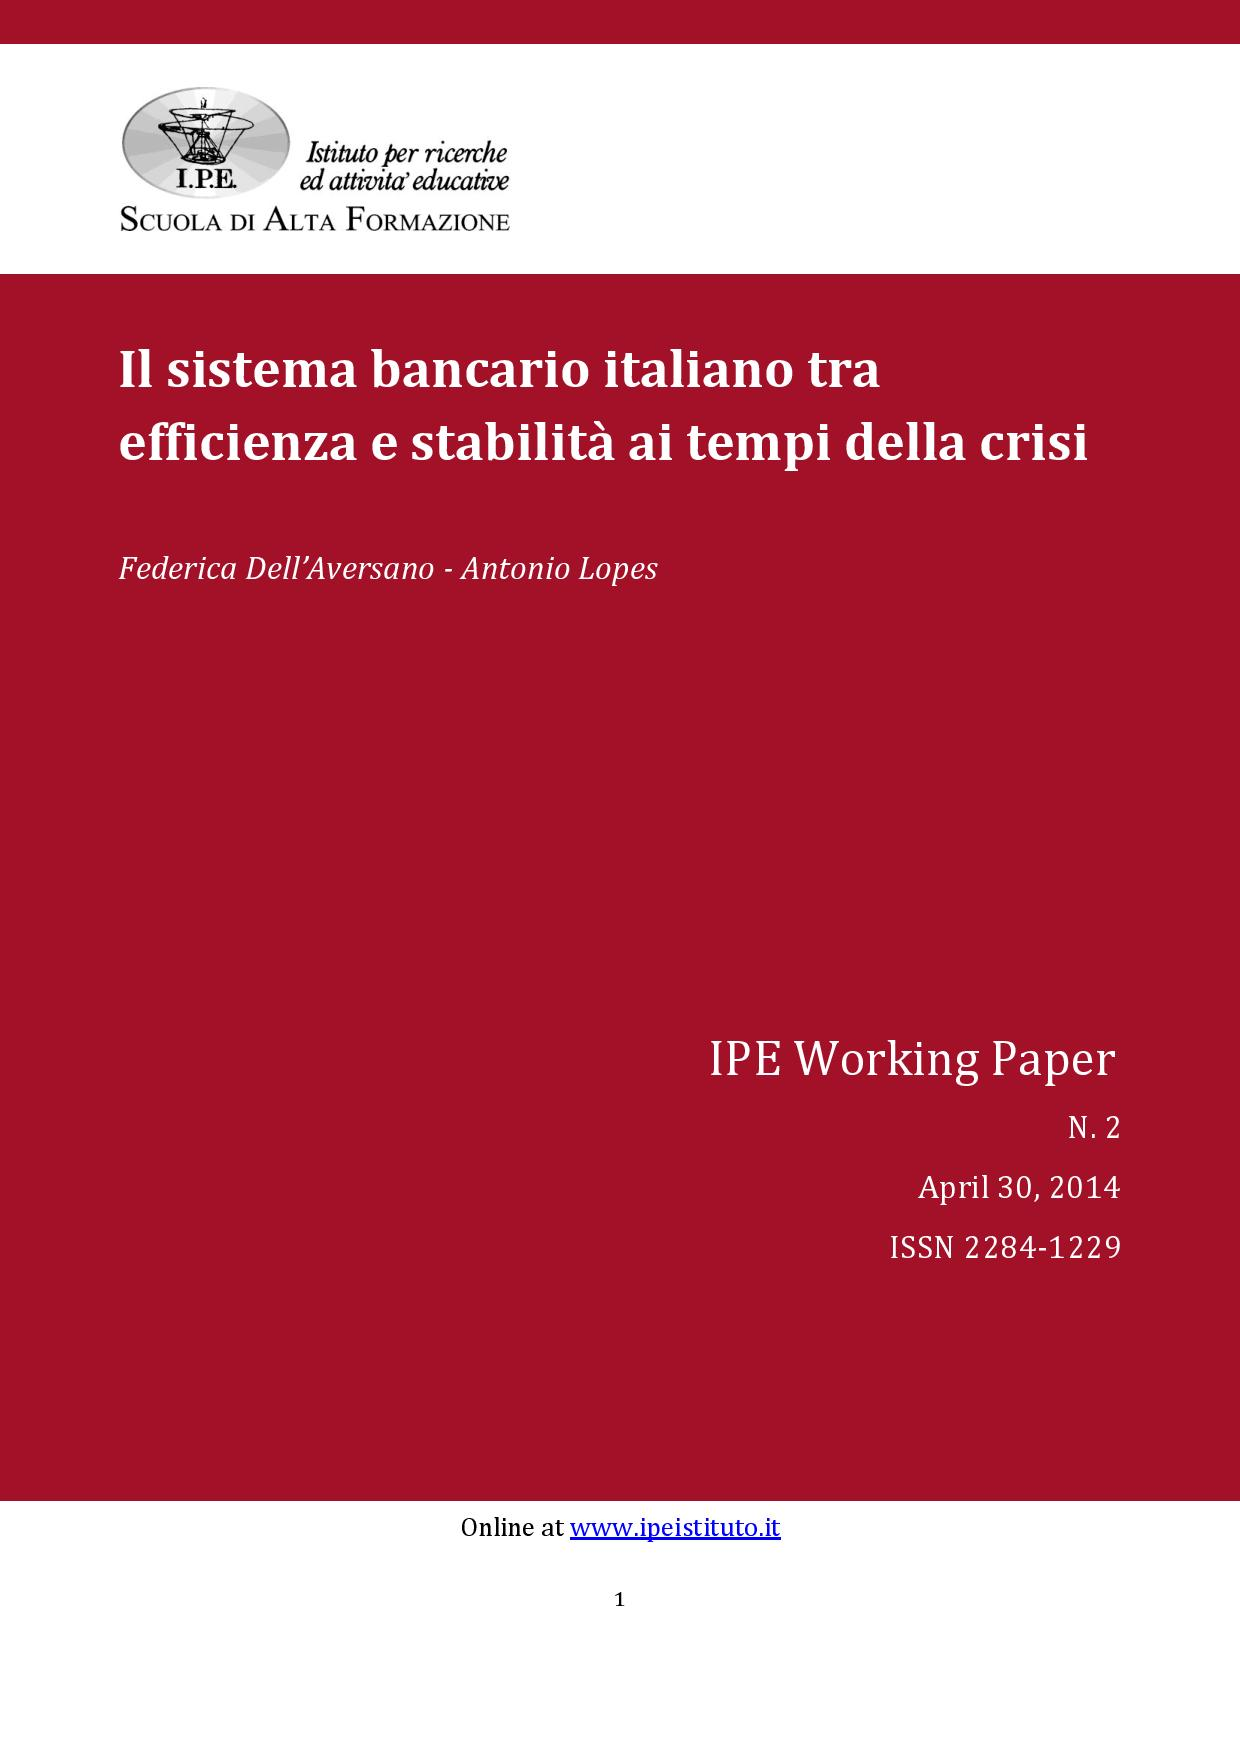 IPE Working Paper N.2/2014